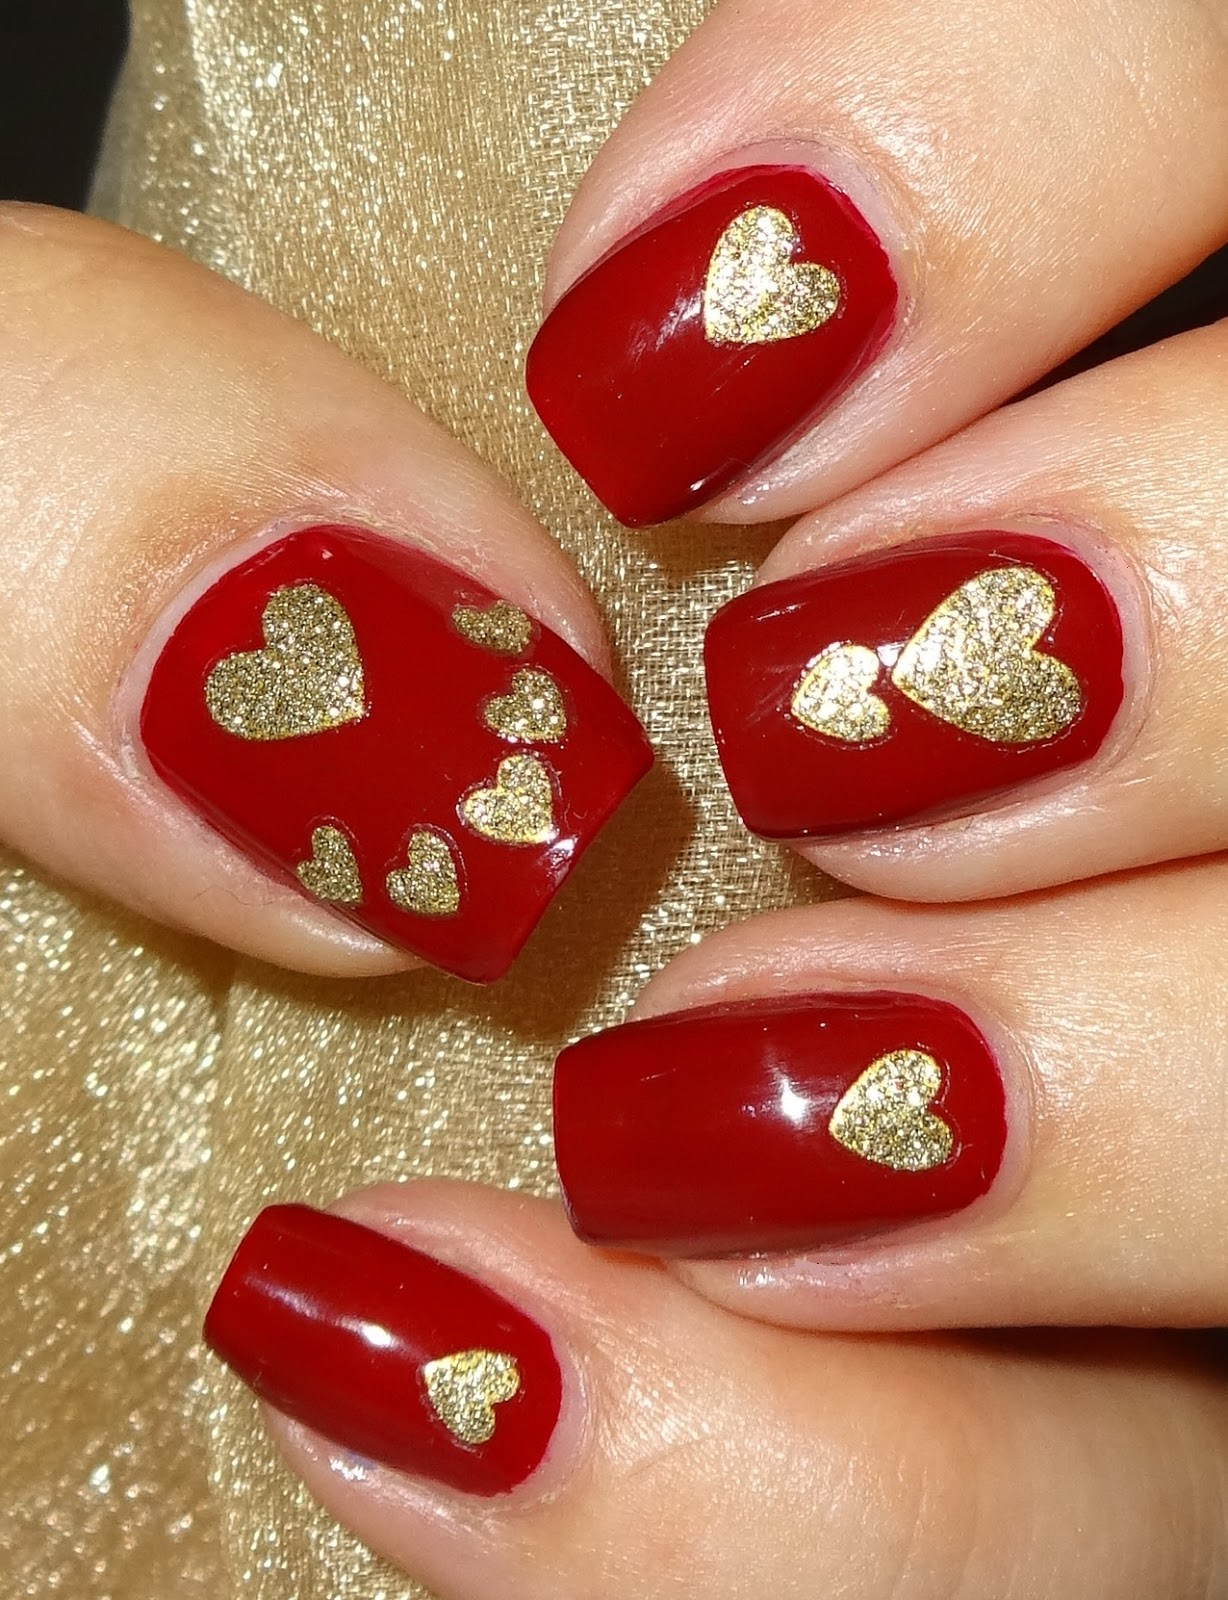 Wendy's Delights: Gold Heart Glitter Nail Stickers From